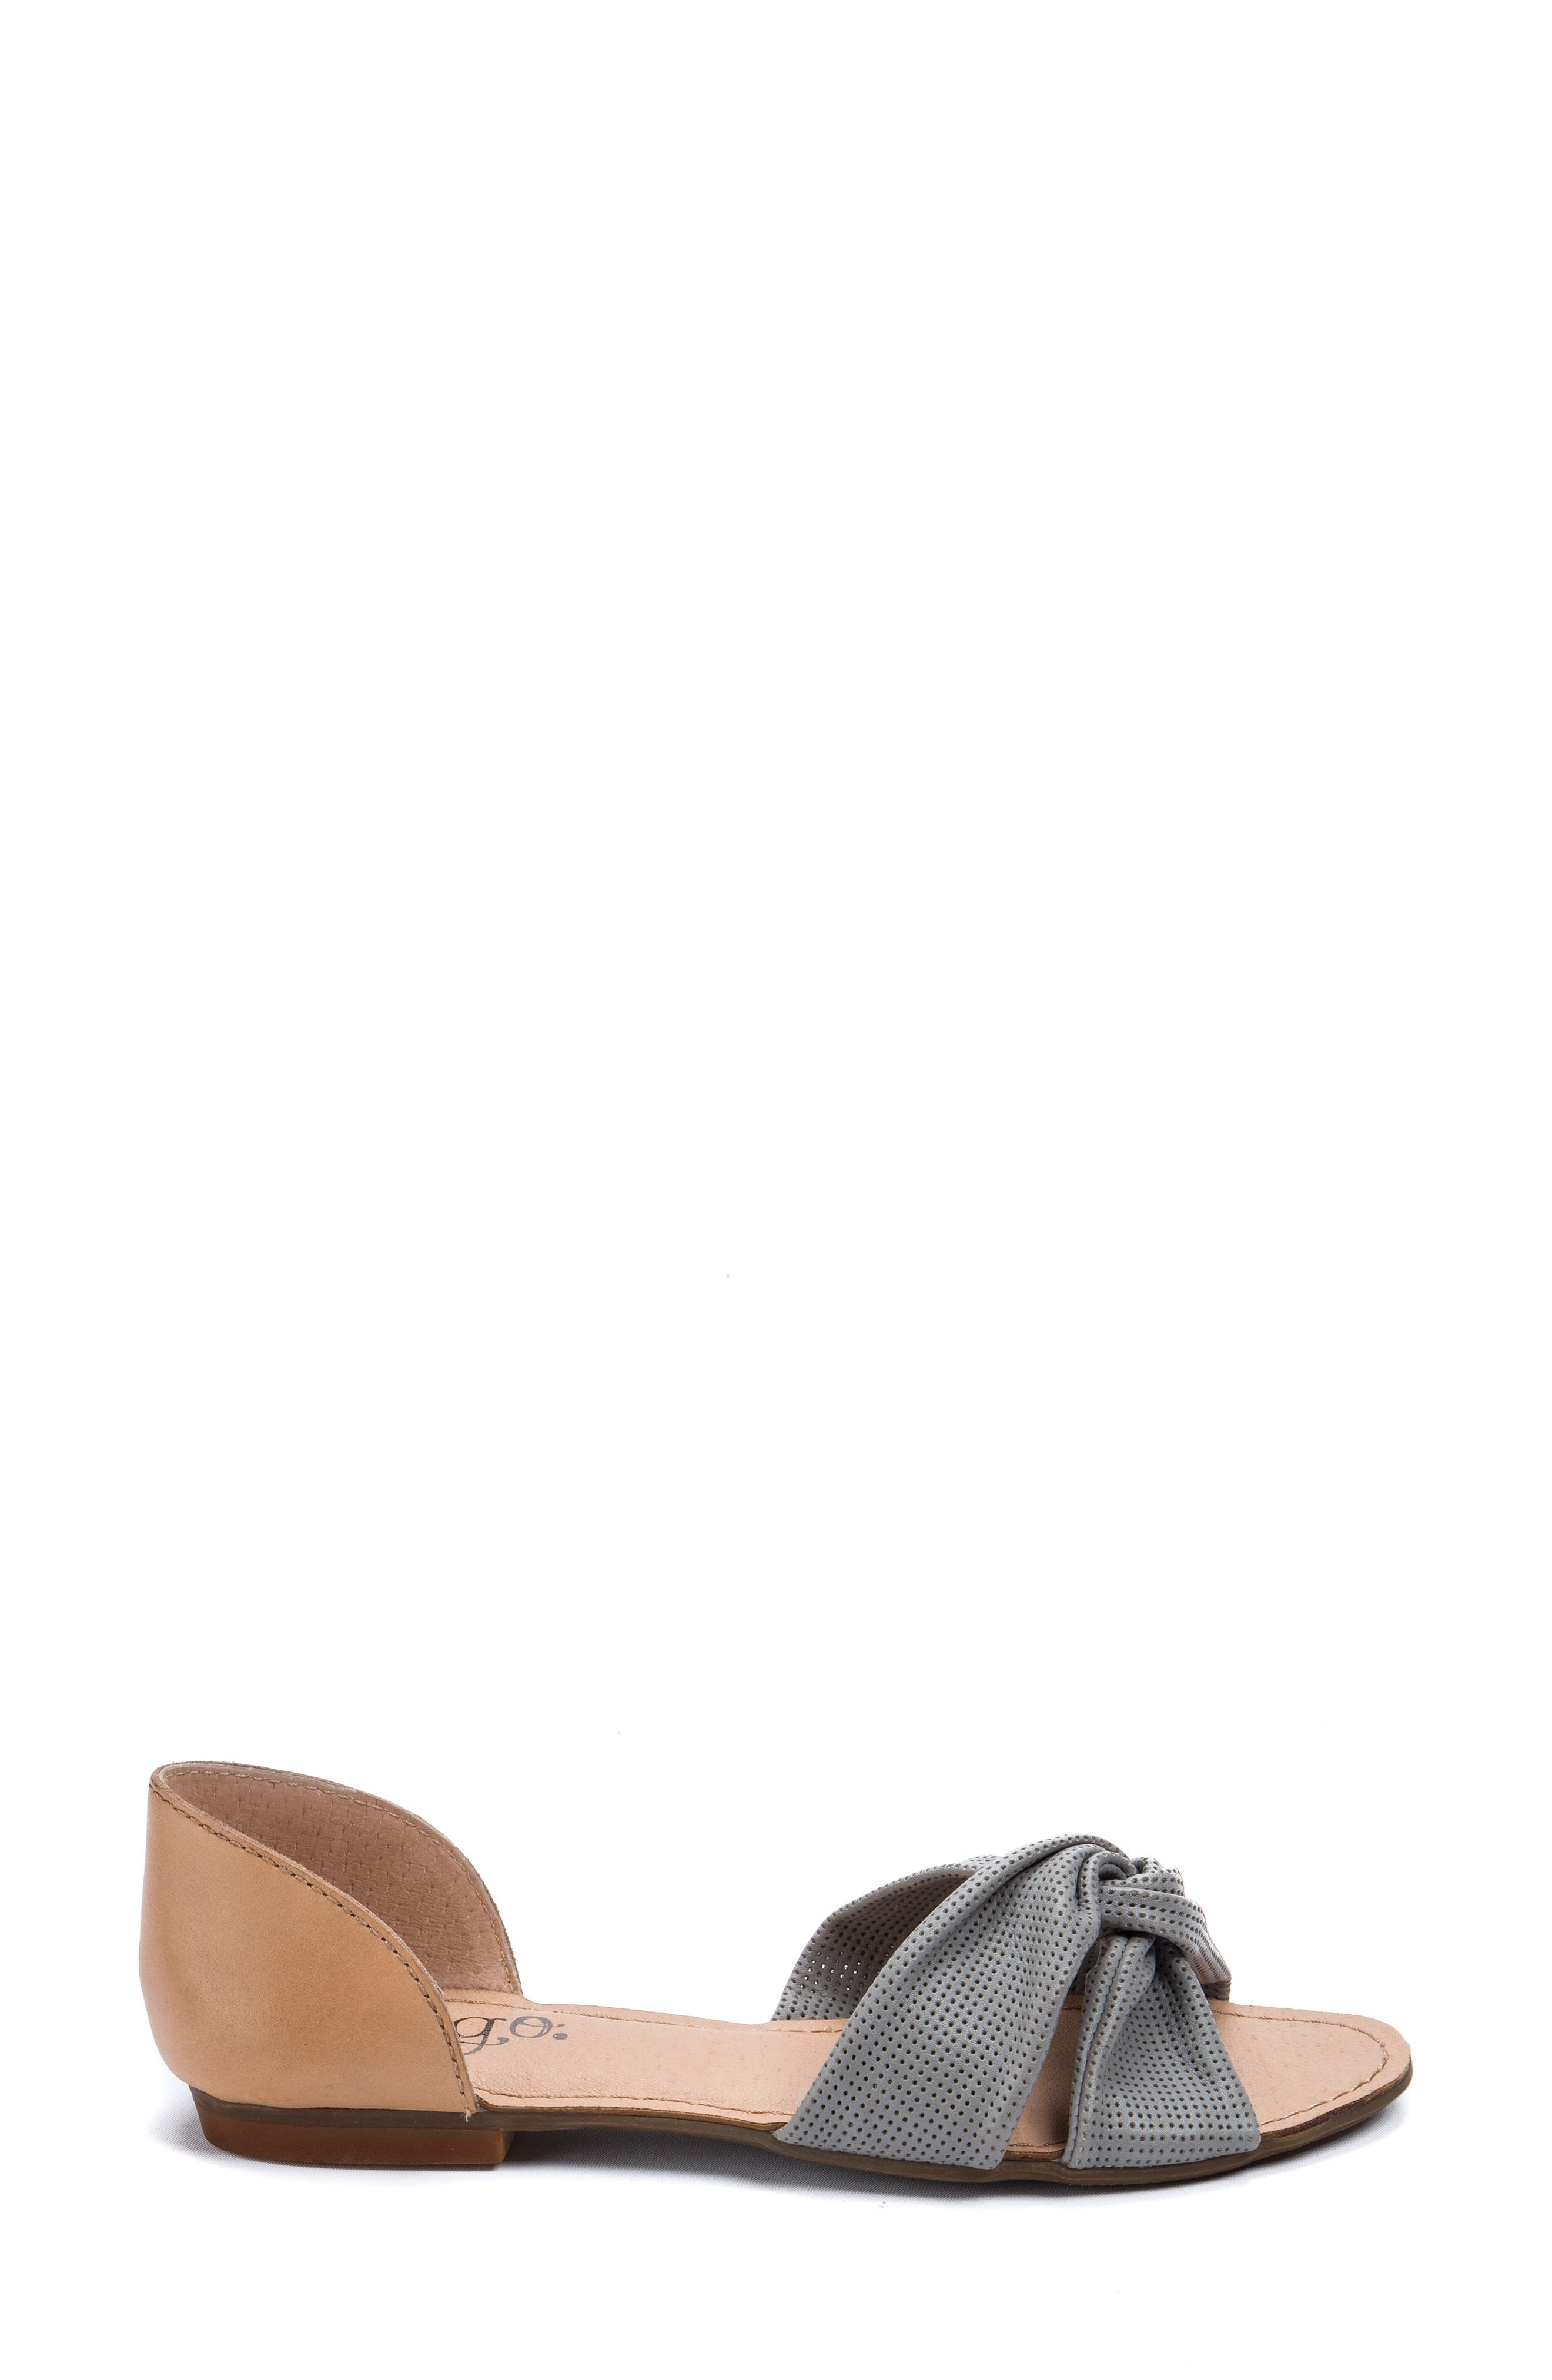 Darcy Perforated Flat Sandal,                             Alternate thumbnail 3, color,                             020